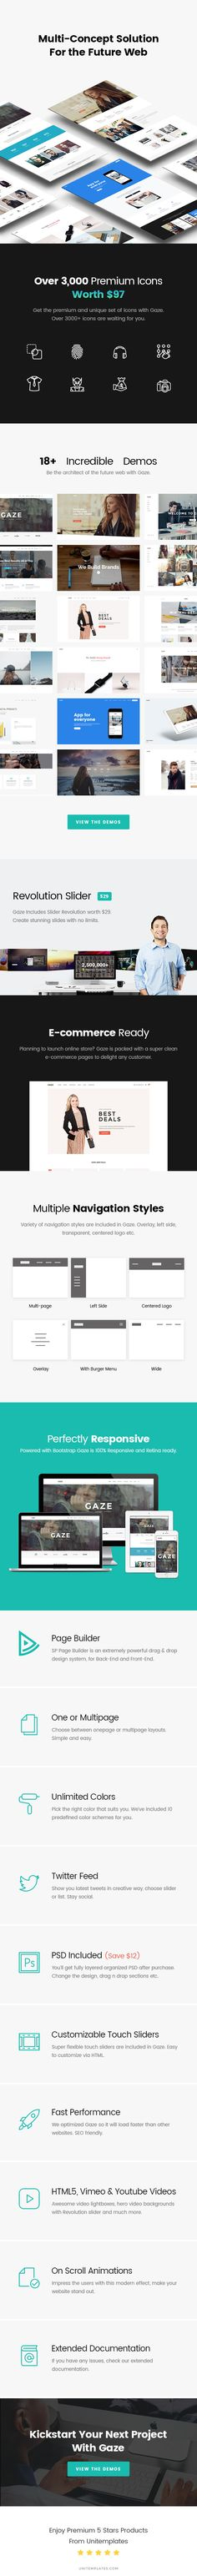 Graphicriver Professional Company Profile Brochure 10 pages 122065 - professional business profile template